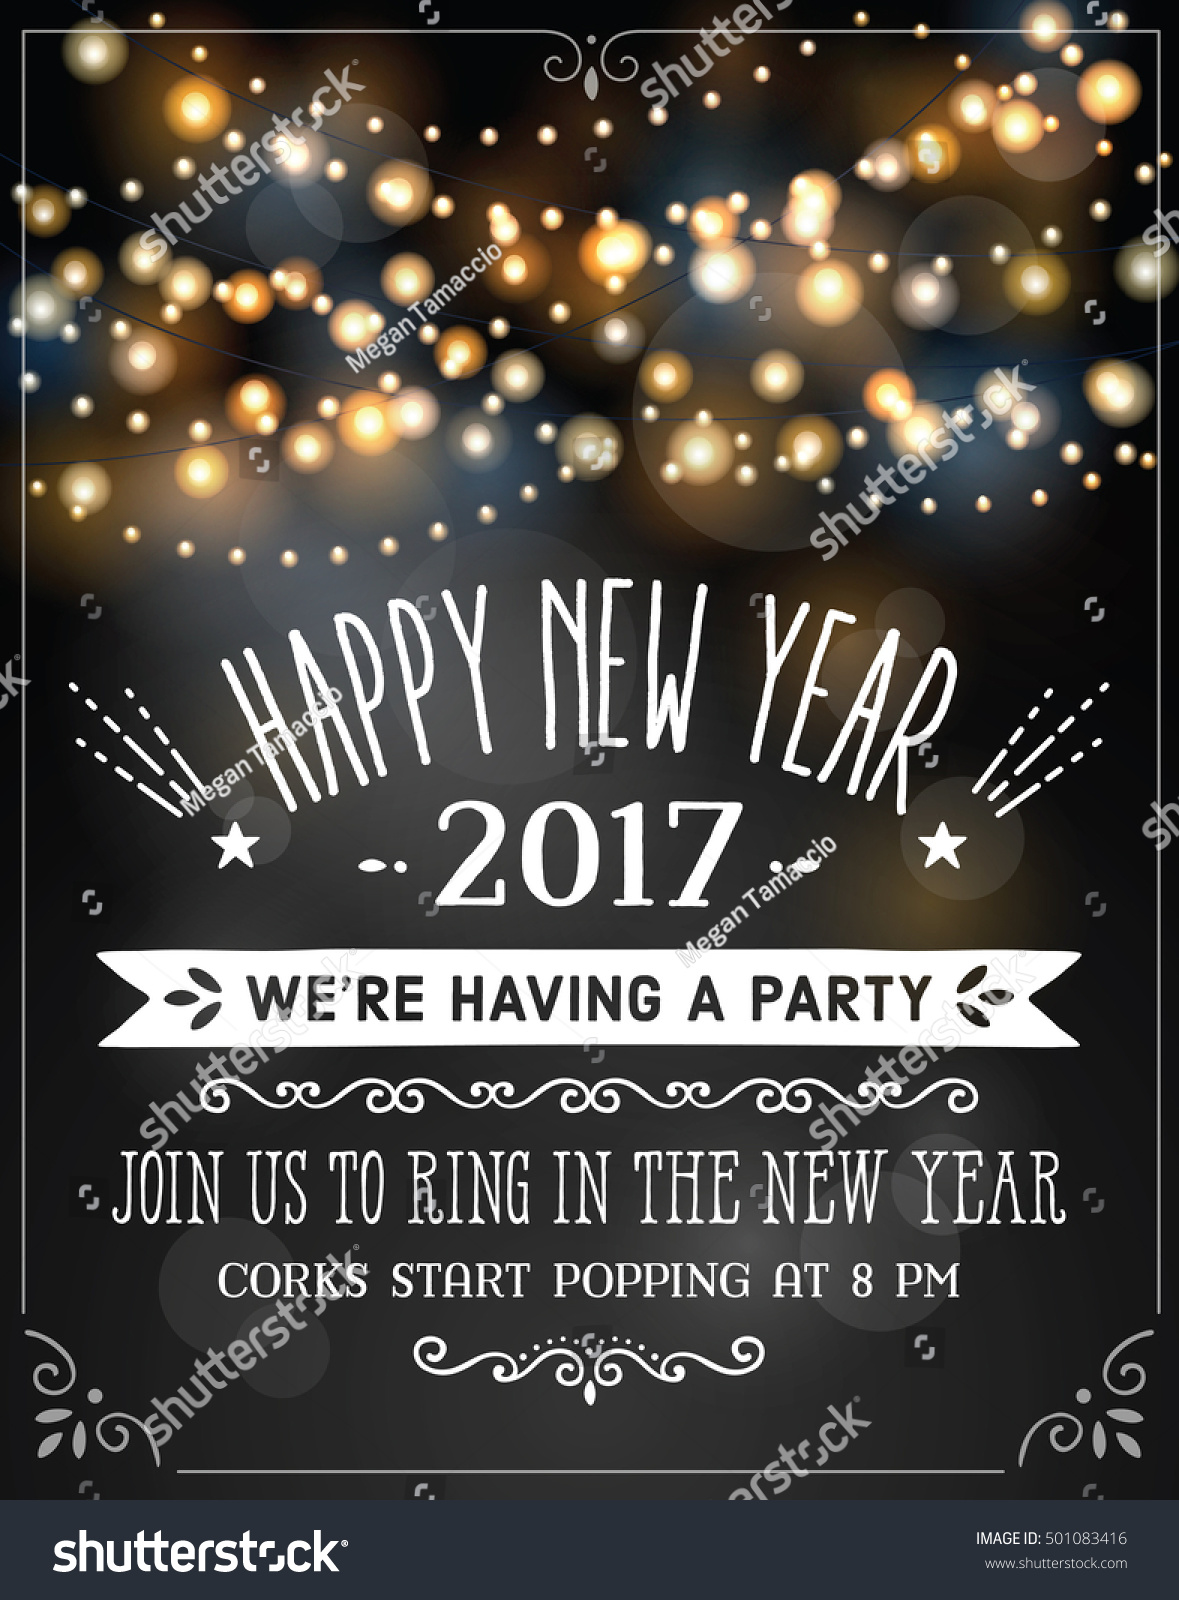 new years eve invitation over party lights background with sample text